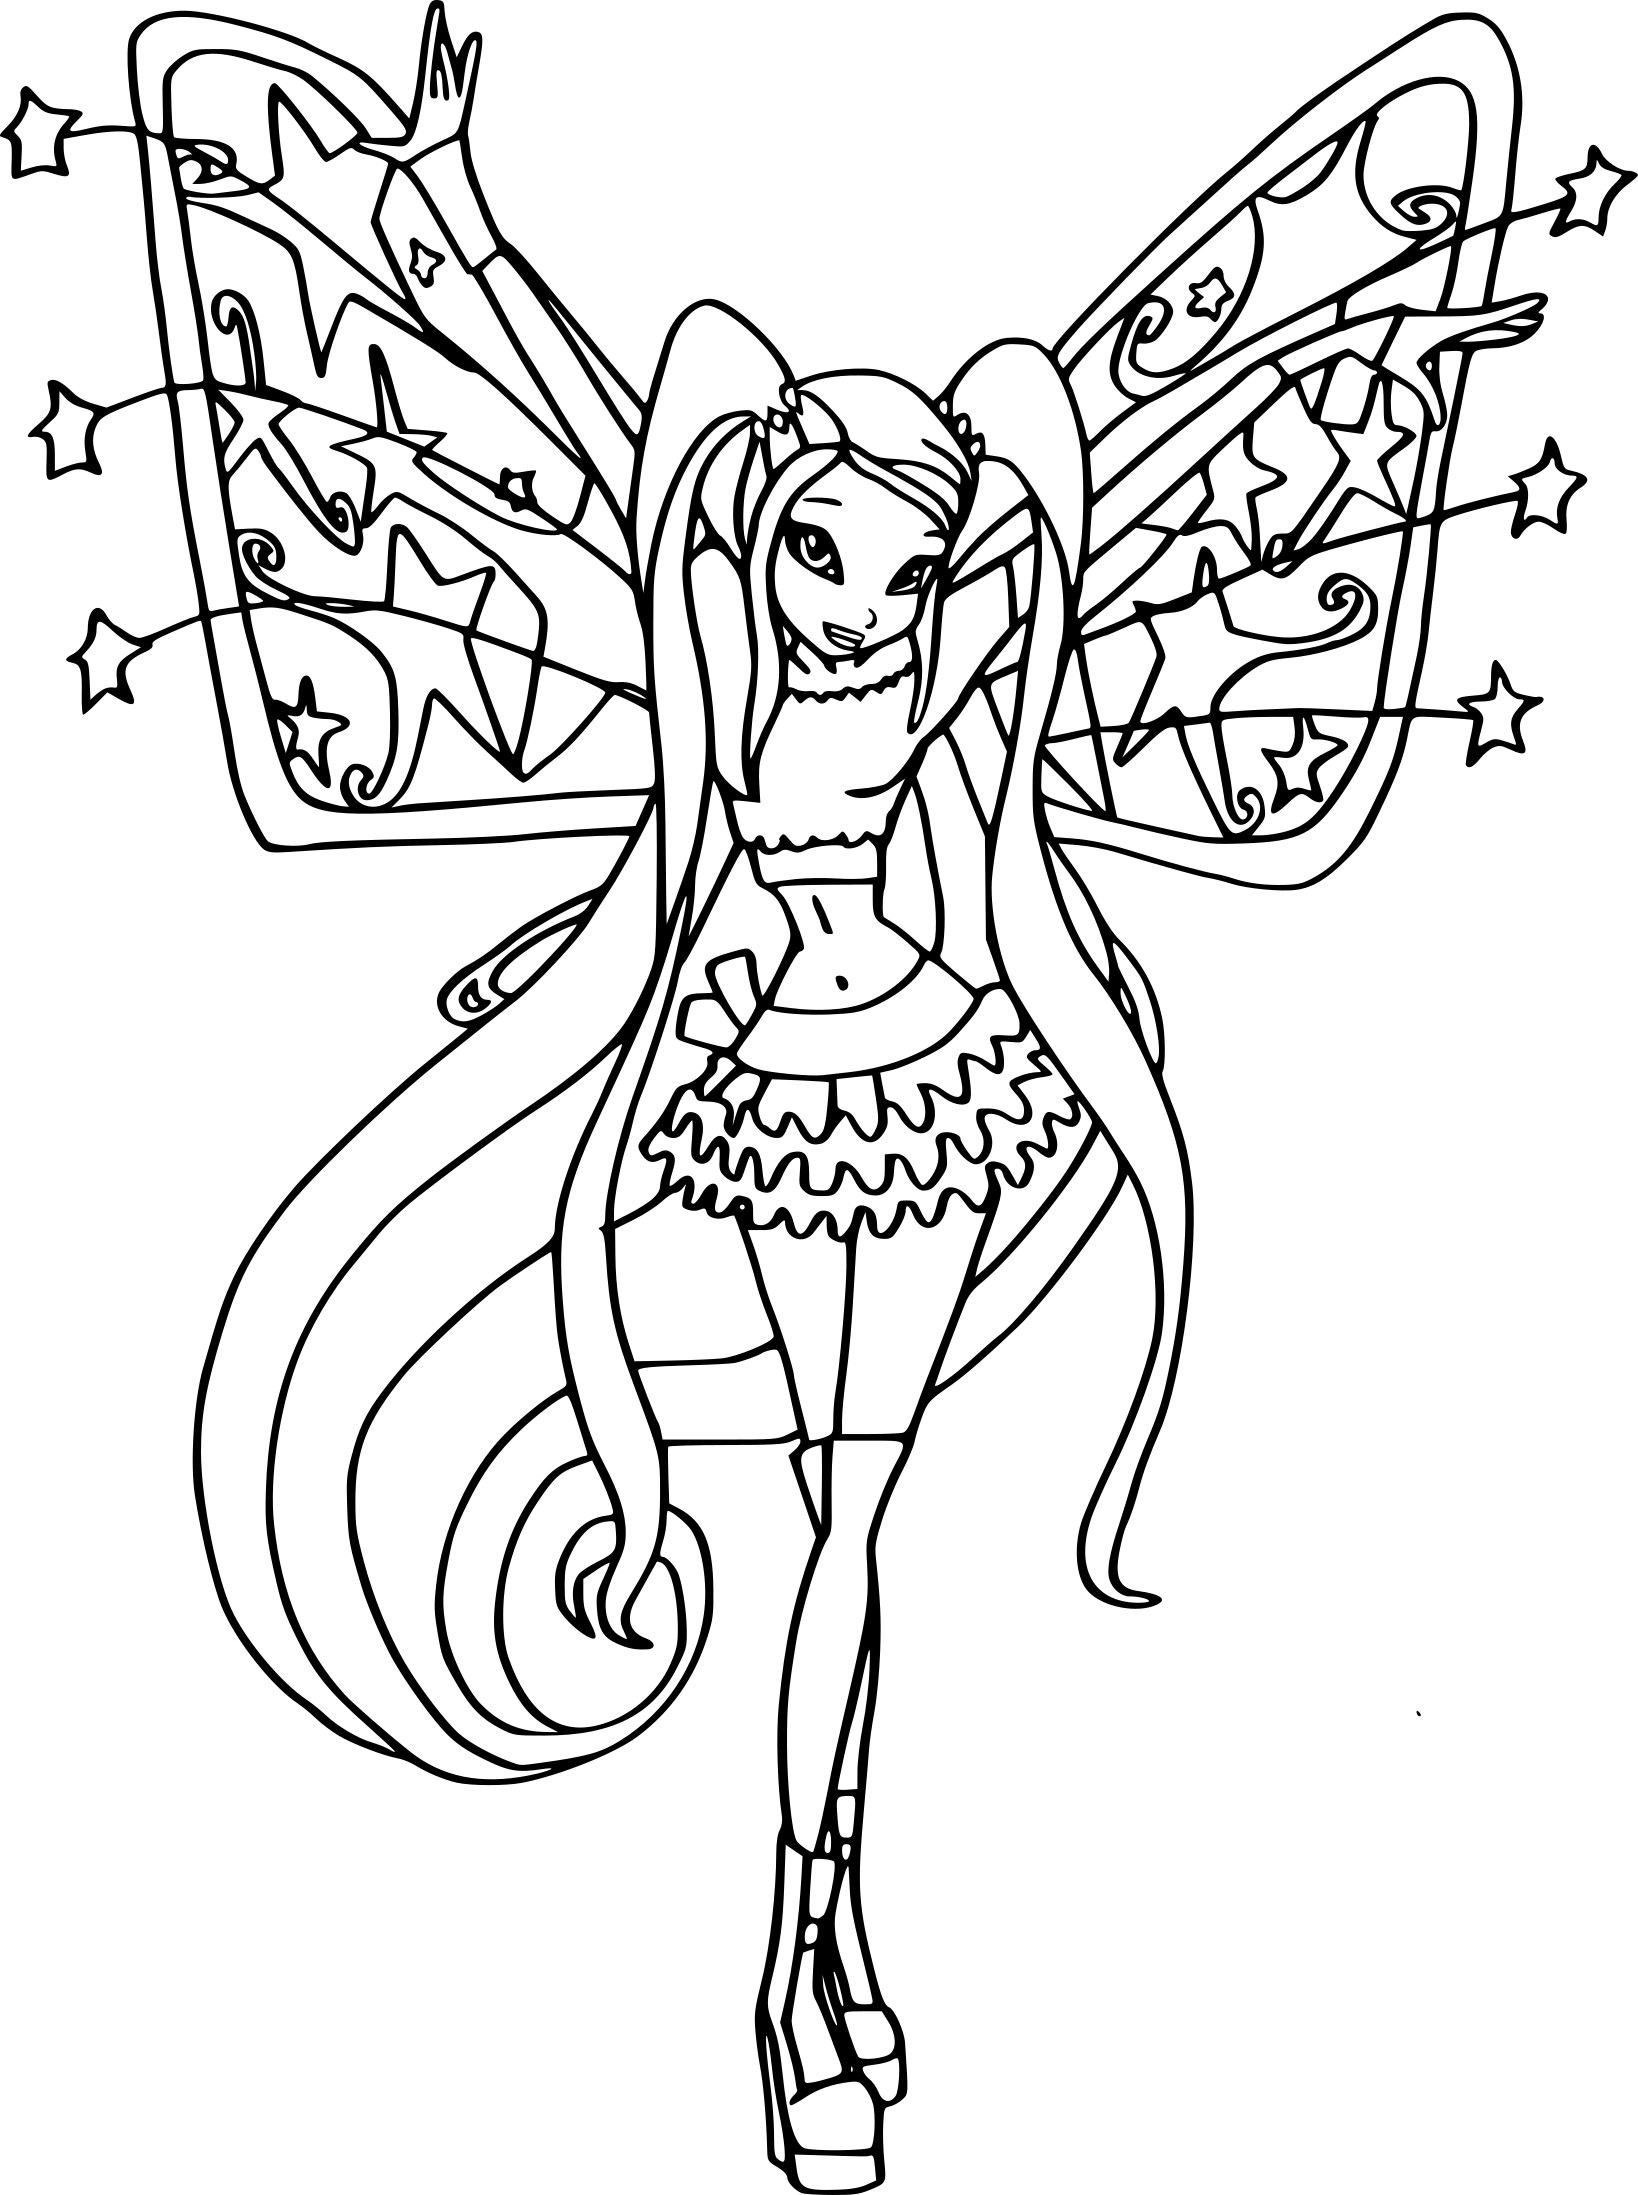 Coloriage stella believix imprimer - Coloriage winx bloom ...